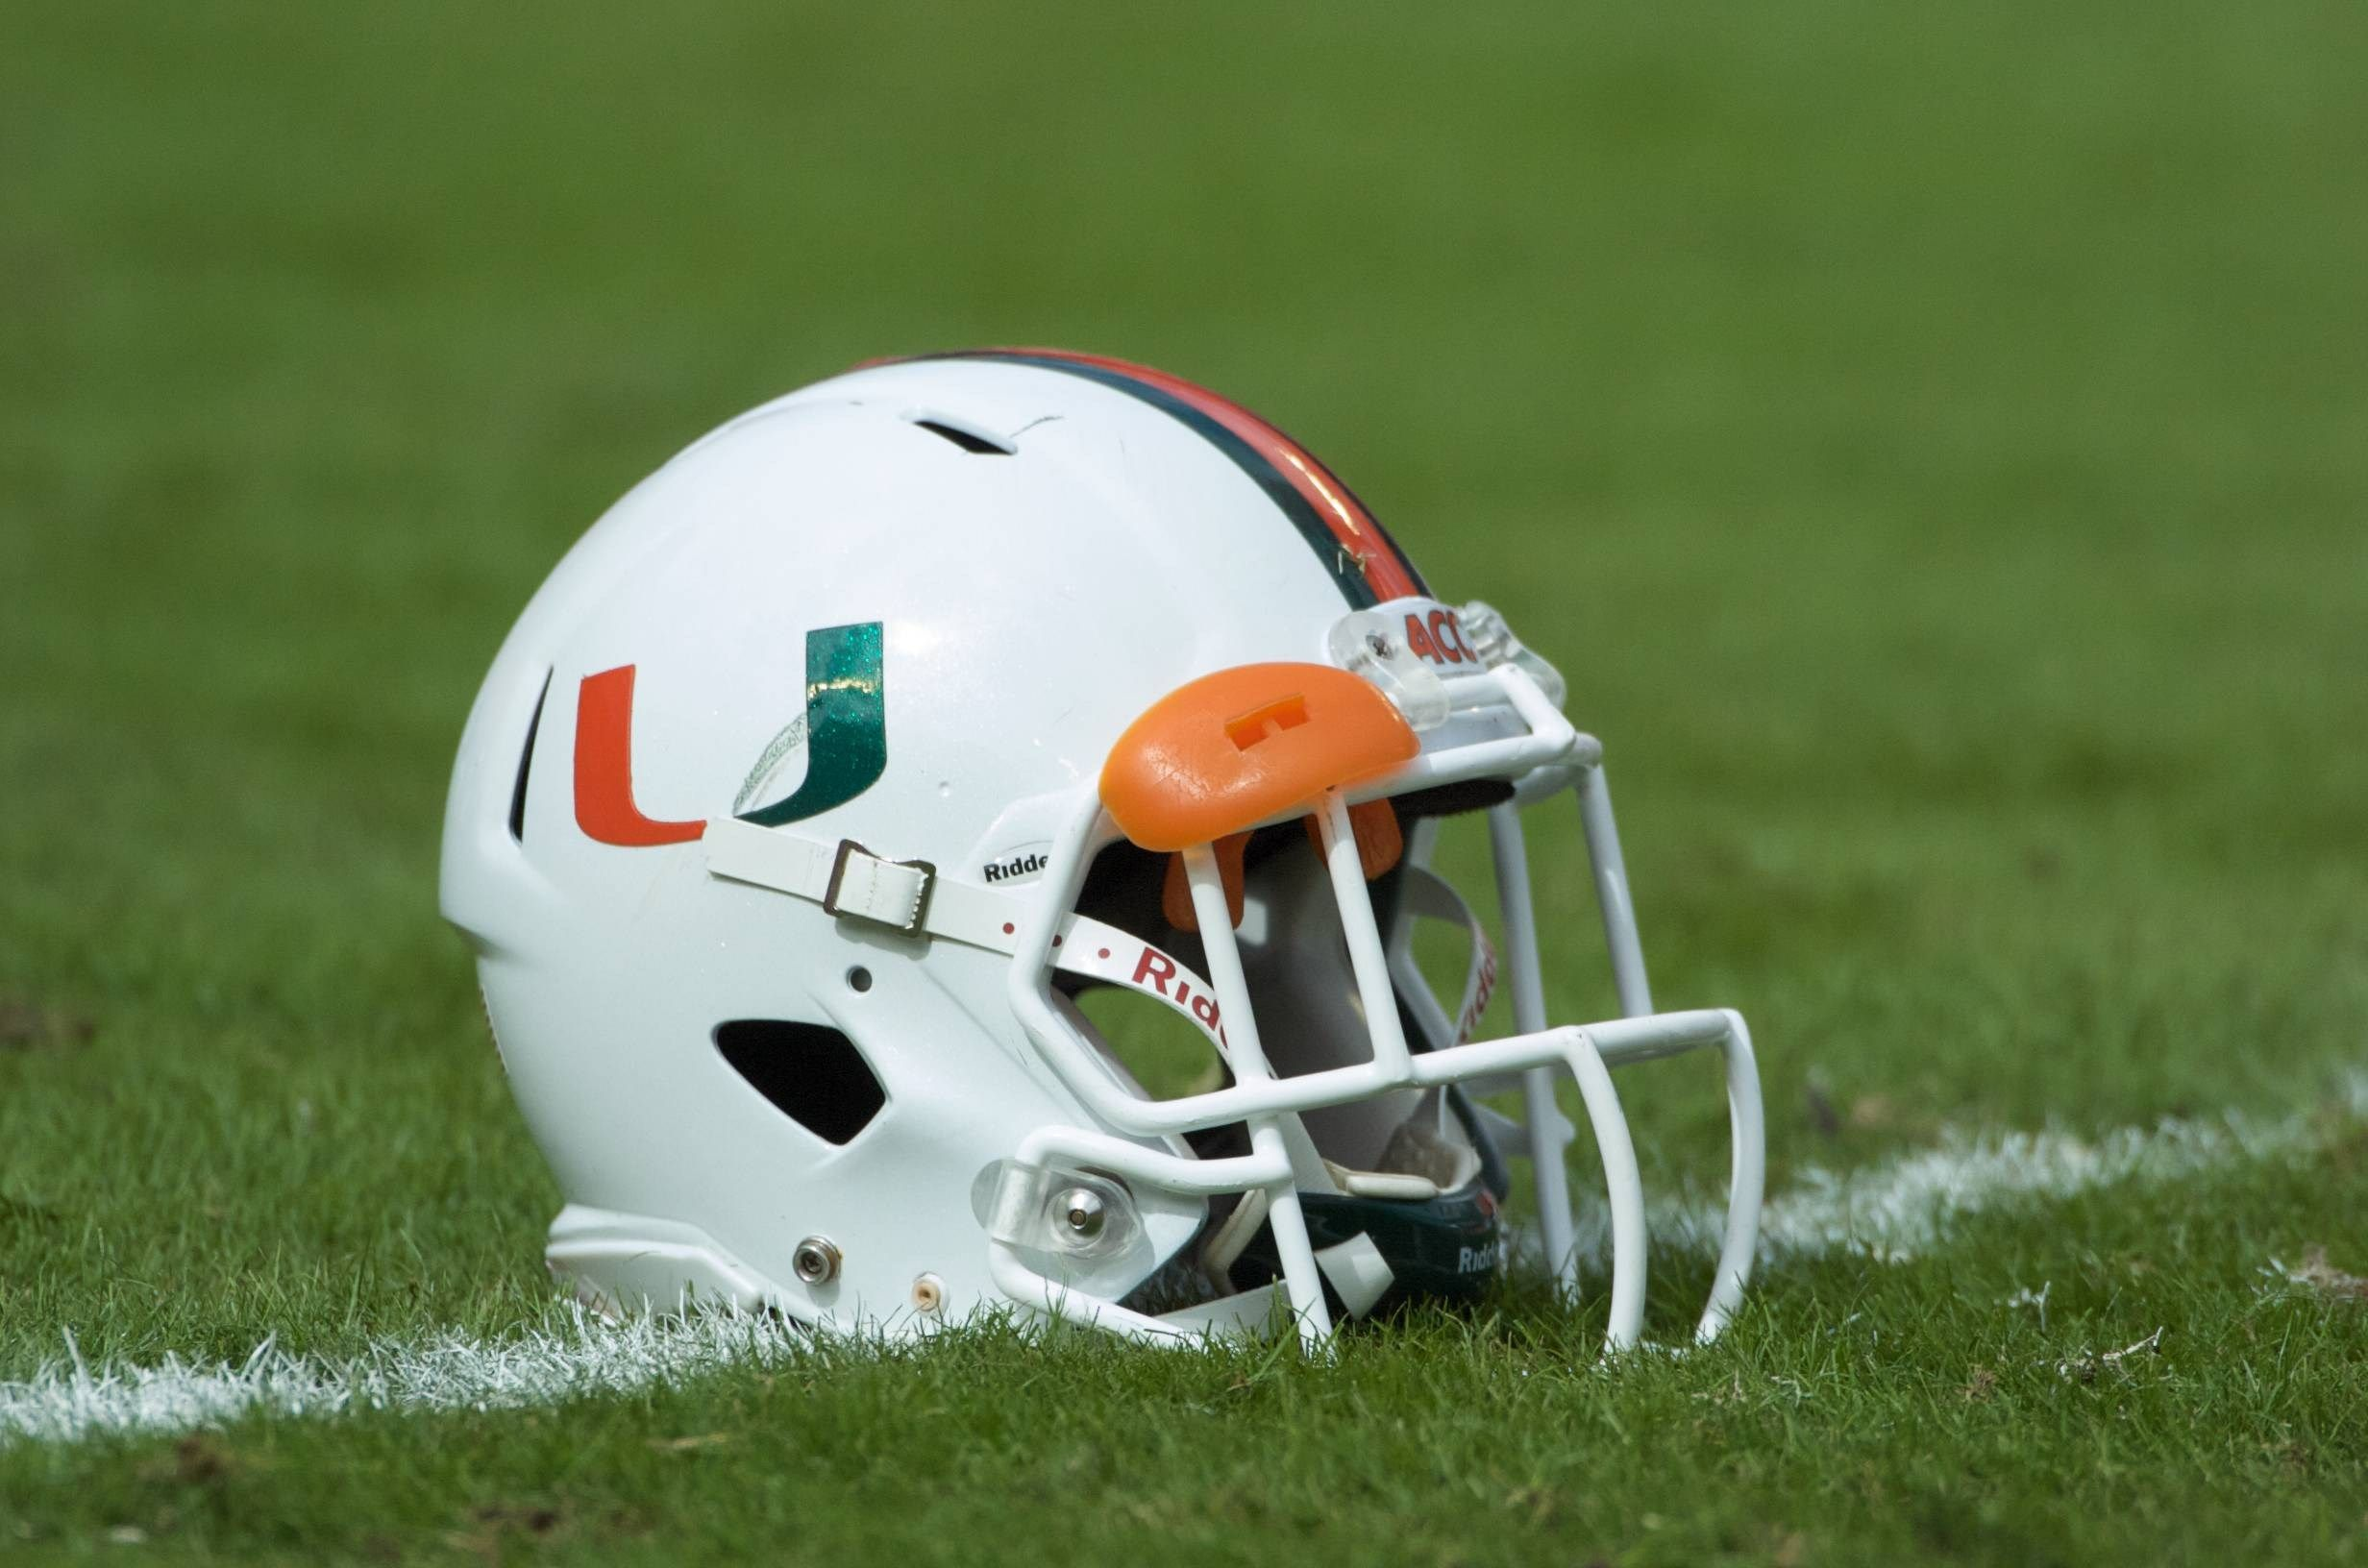 Miami Hurricanes Desktop Wallpaper Miami Hurricanes Football Hurricanes Football Football